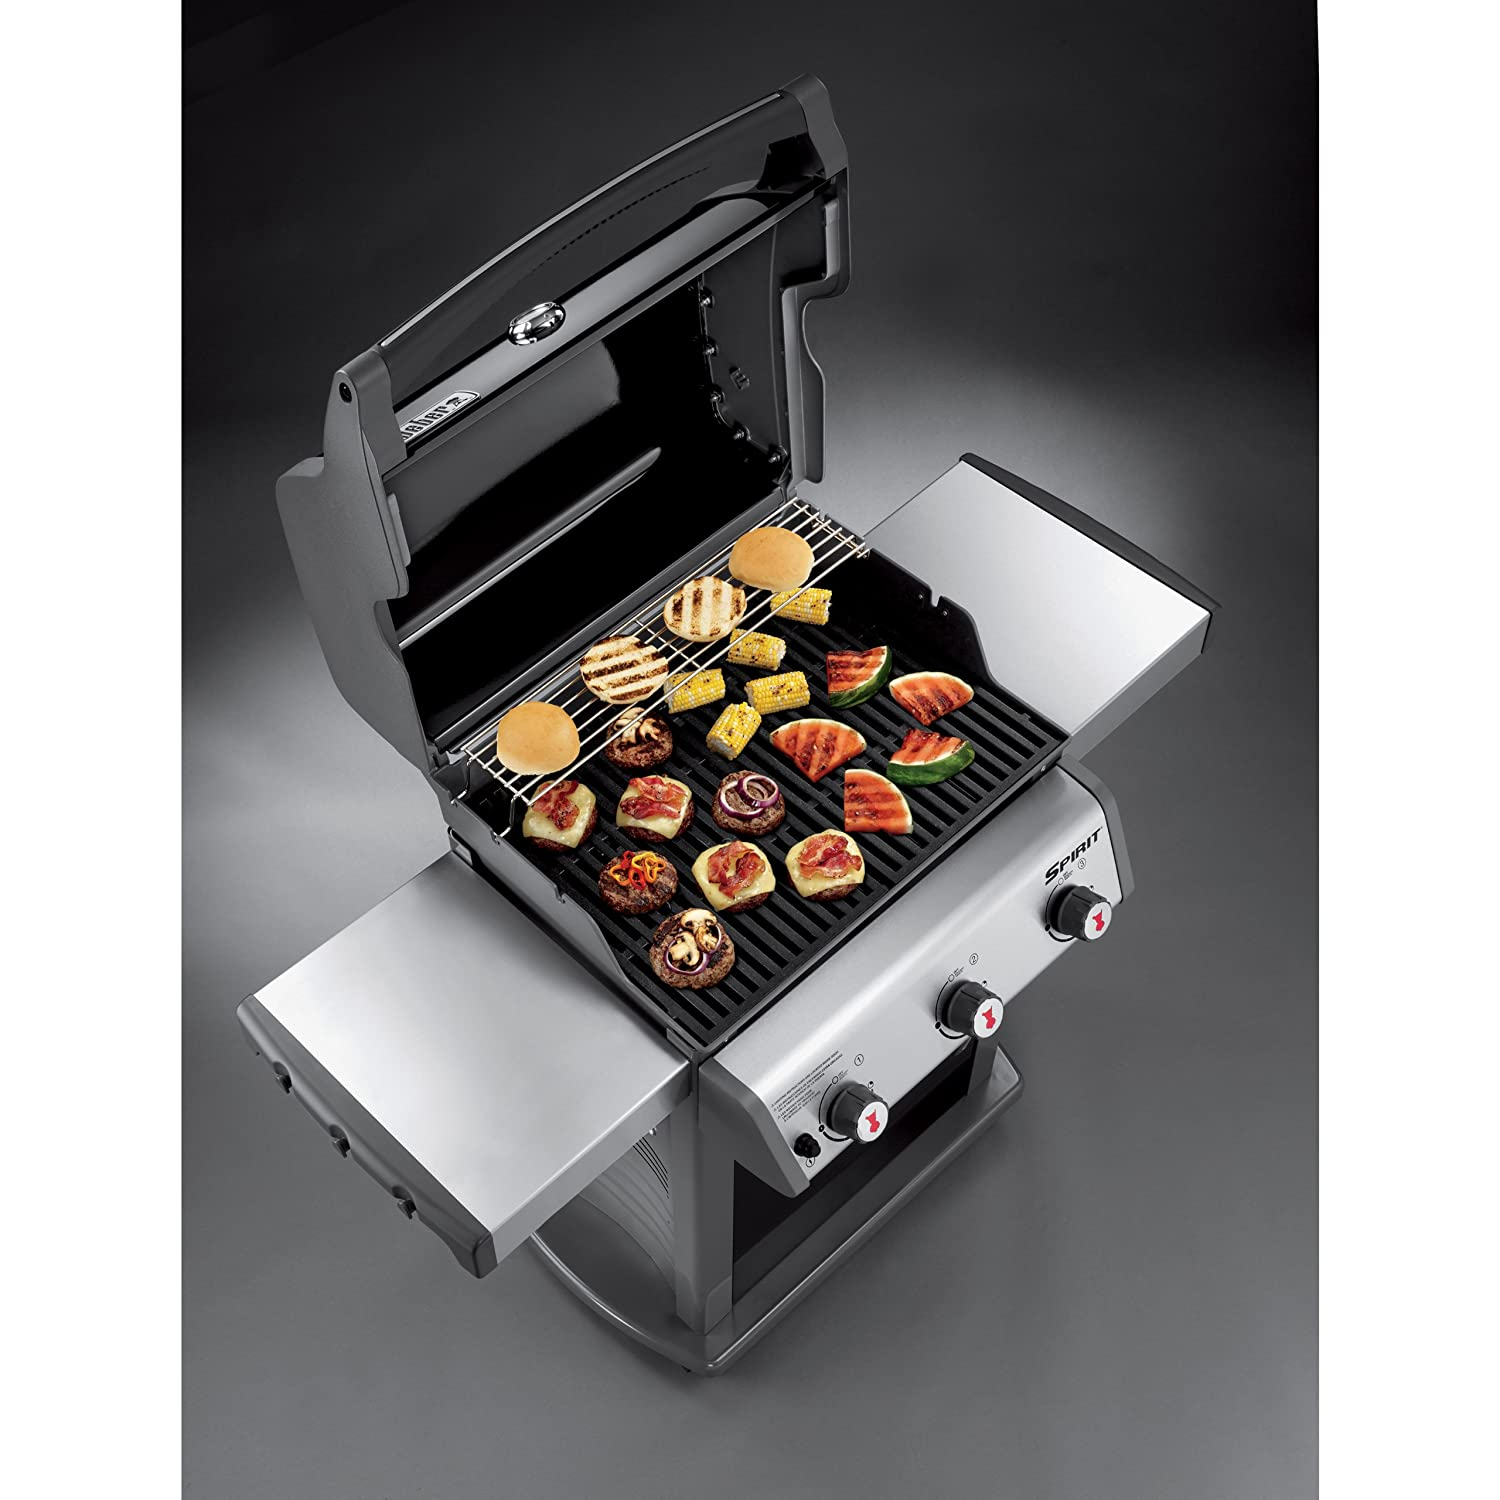 amazon com weber 46510001 spirit e310 liquid propane gas grill